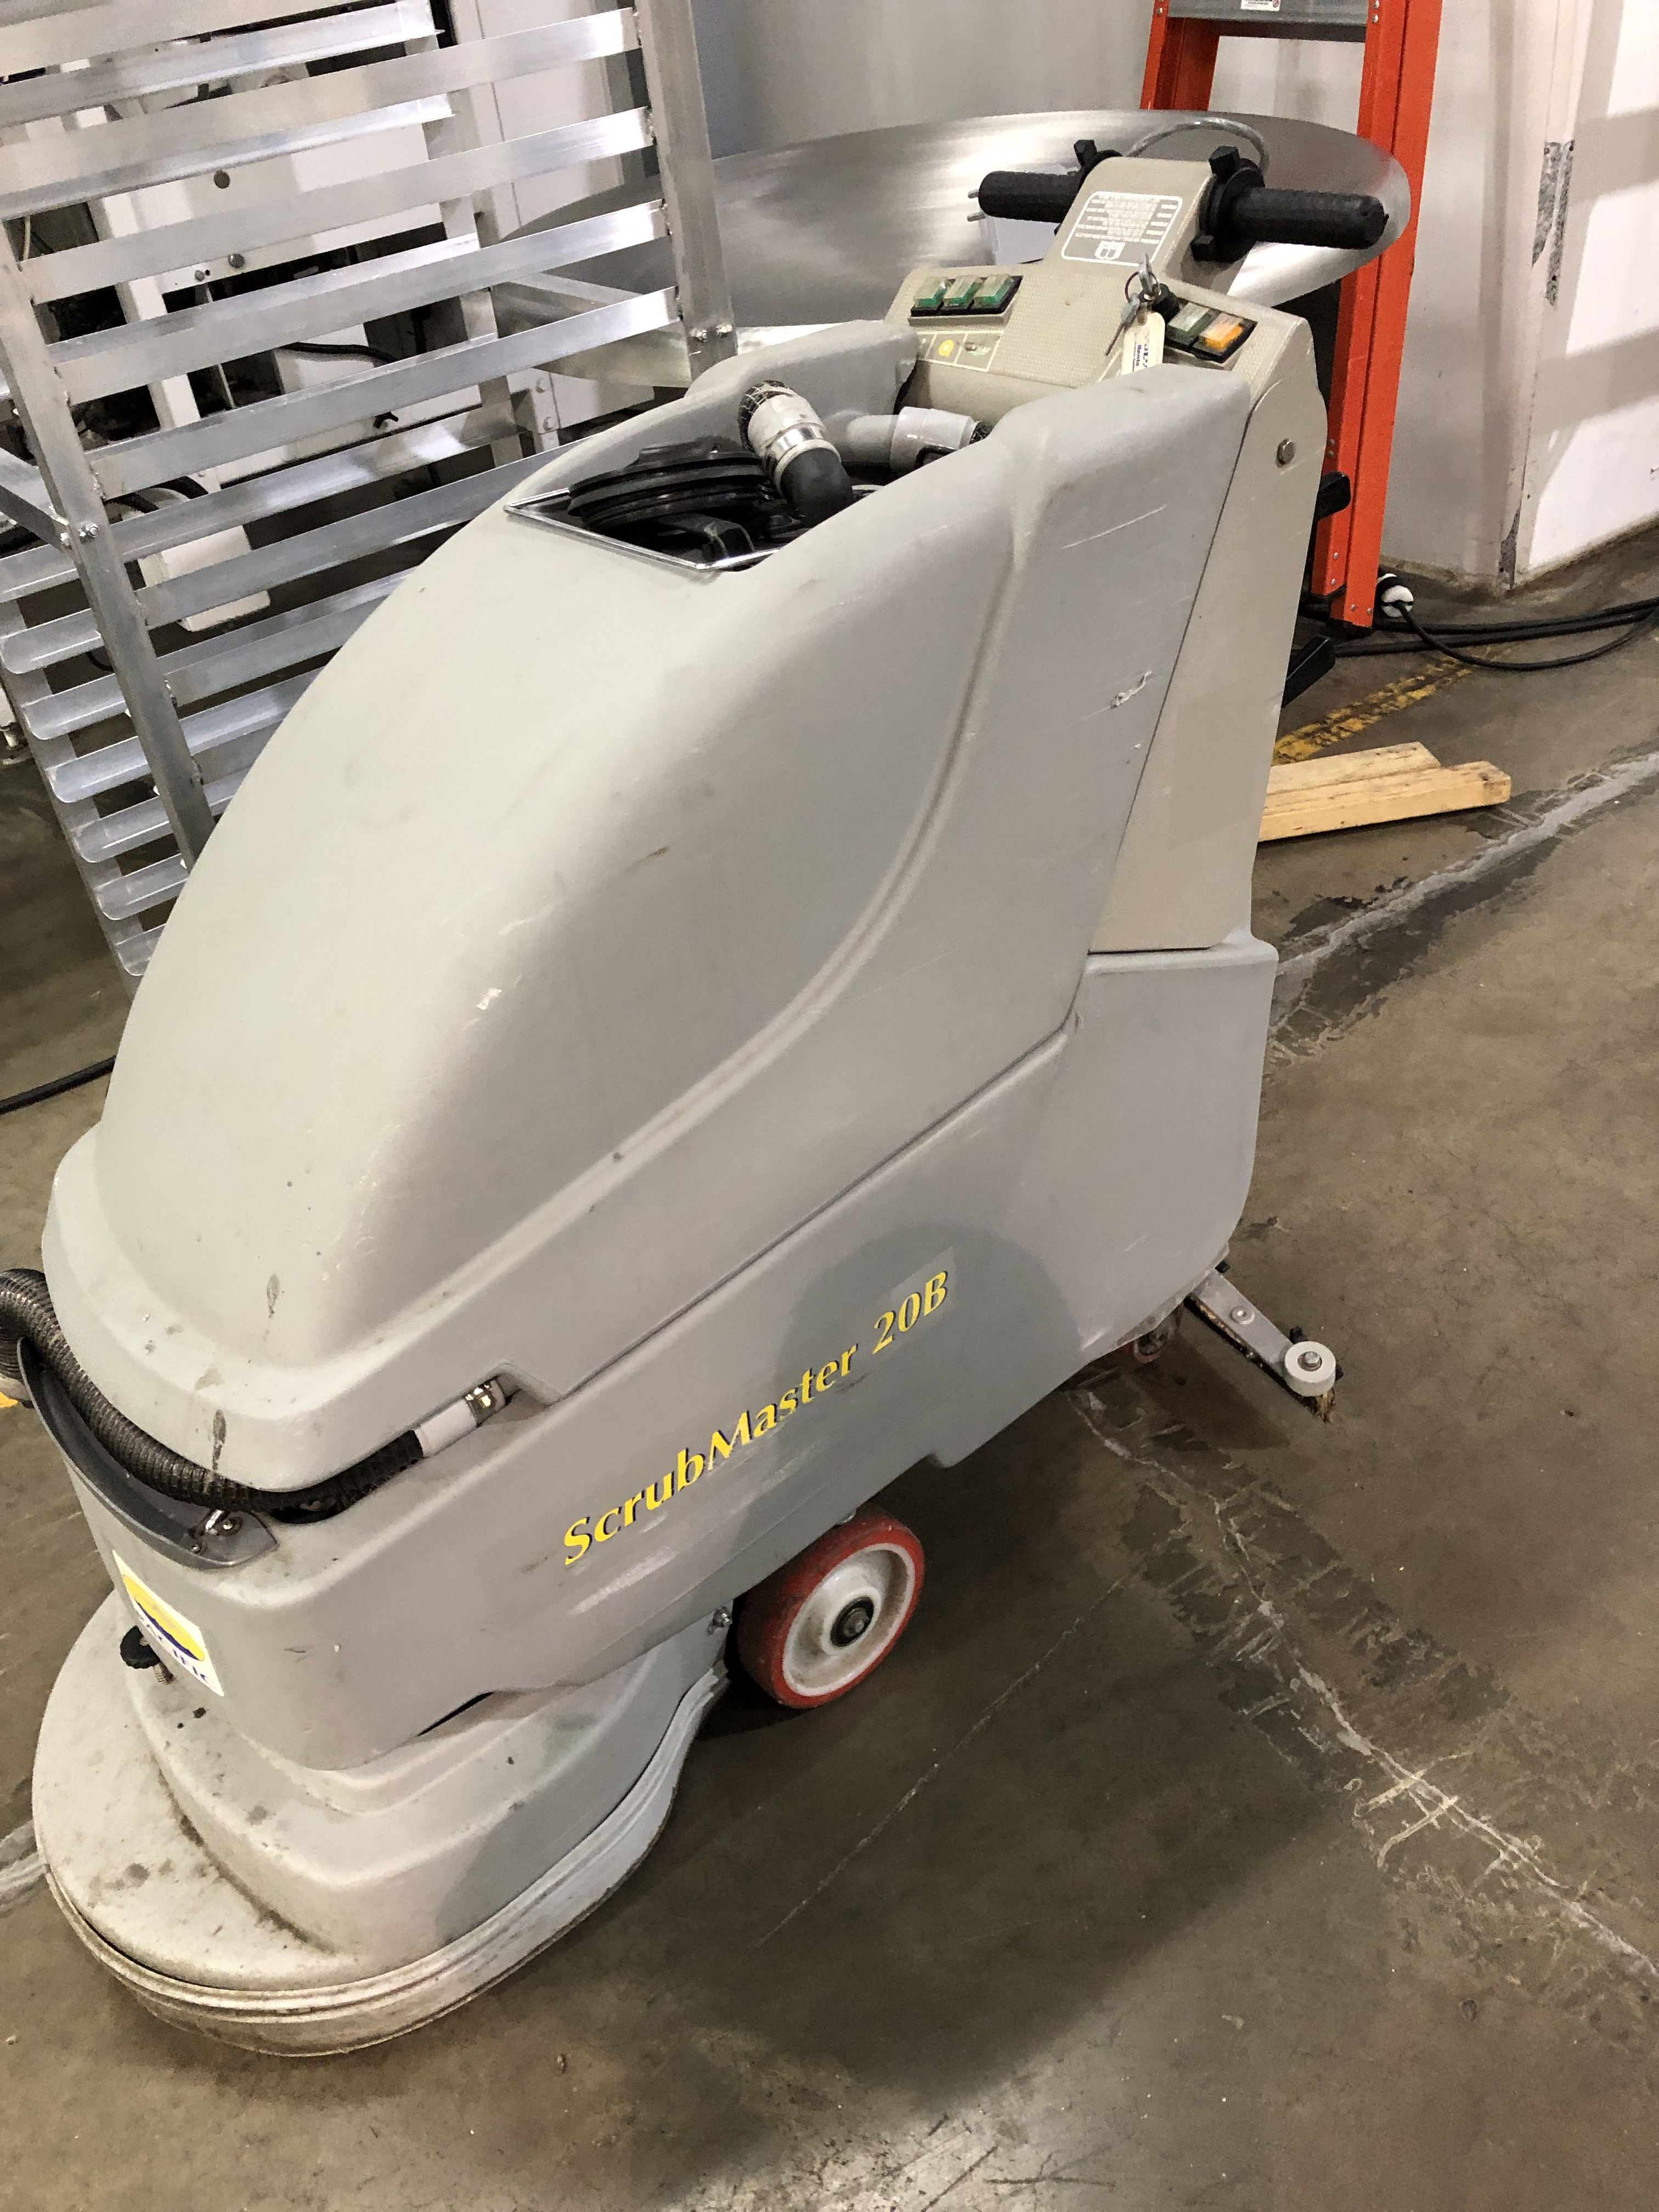 Lot 56 - Pacifici Scrubmaster 20B Floor Scrubber